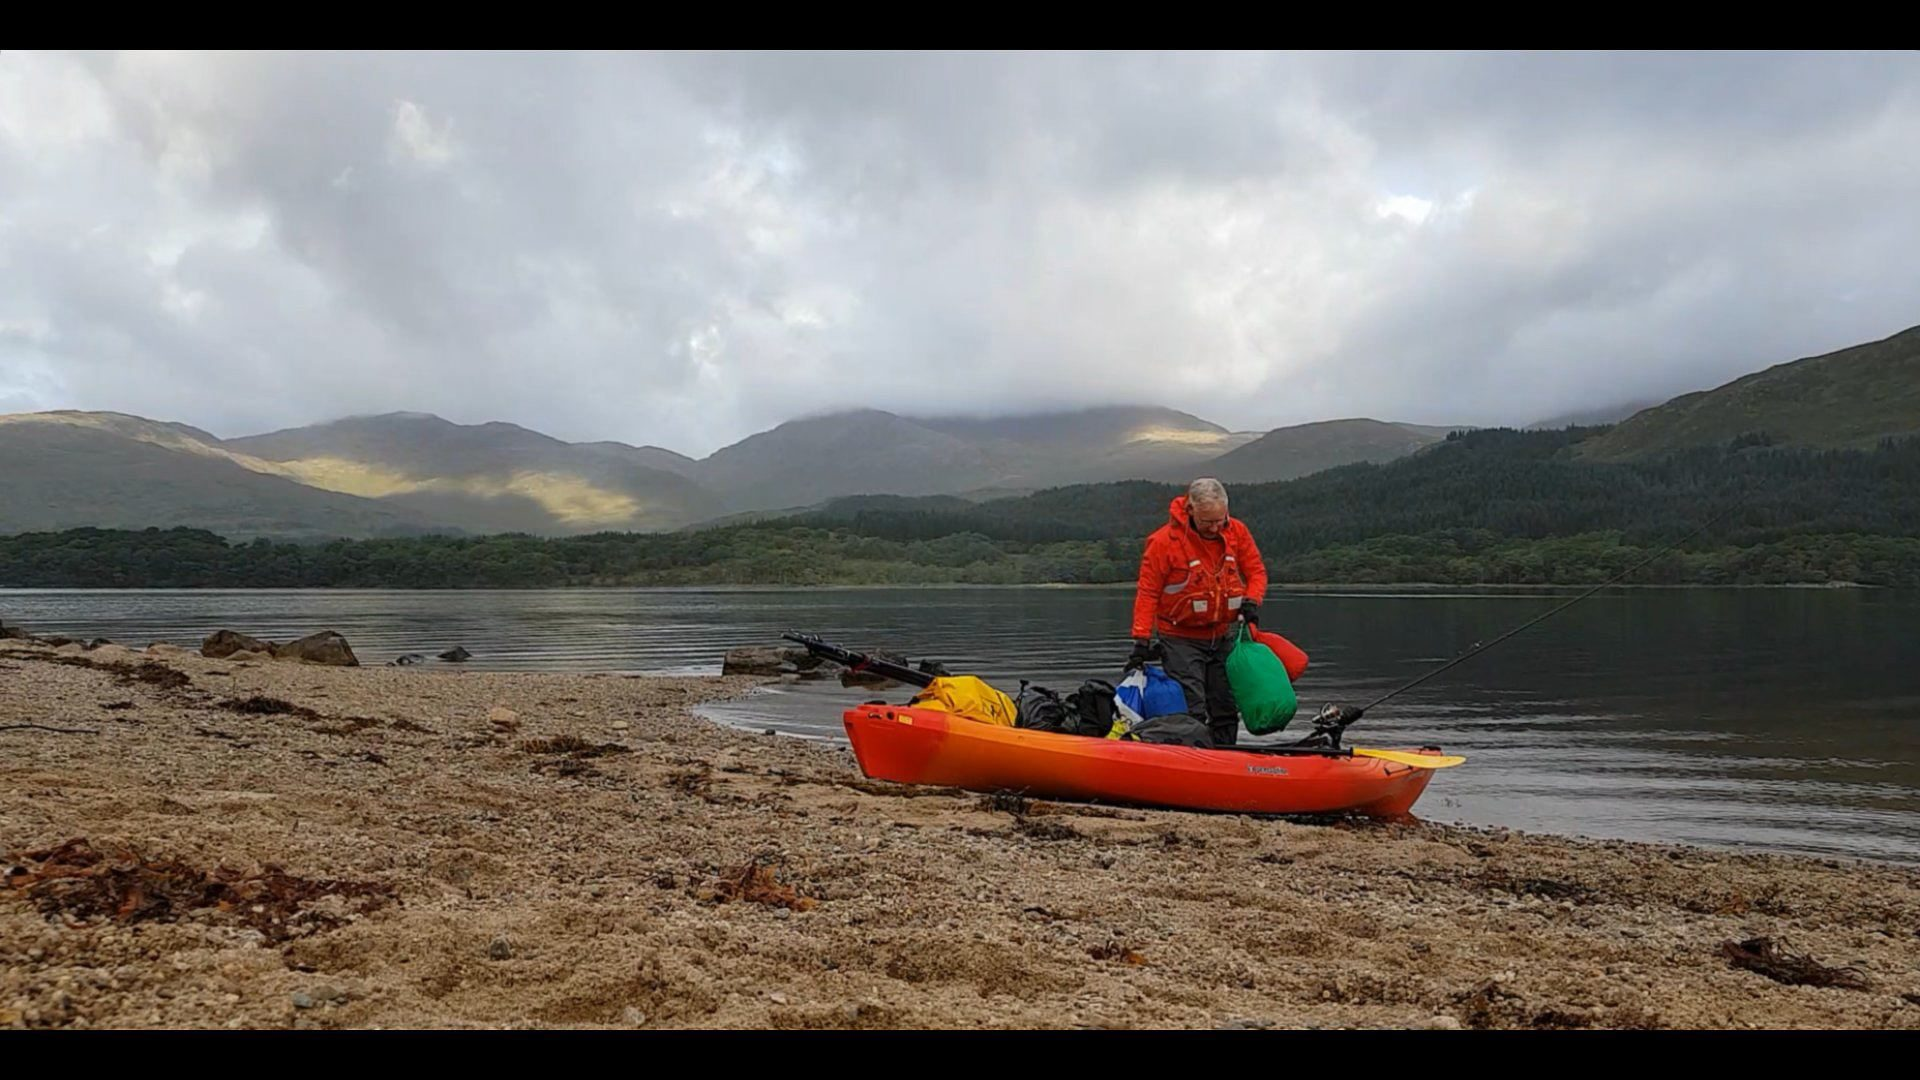 Reloading my kayak for the trip back up the loch